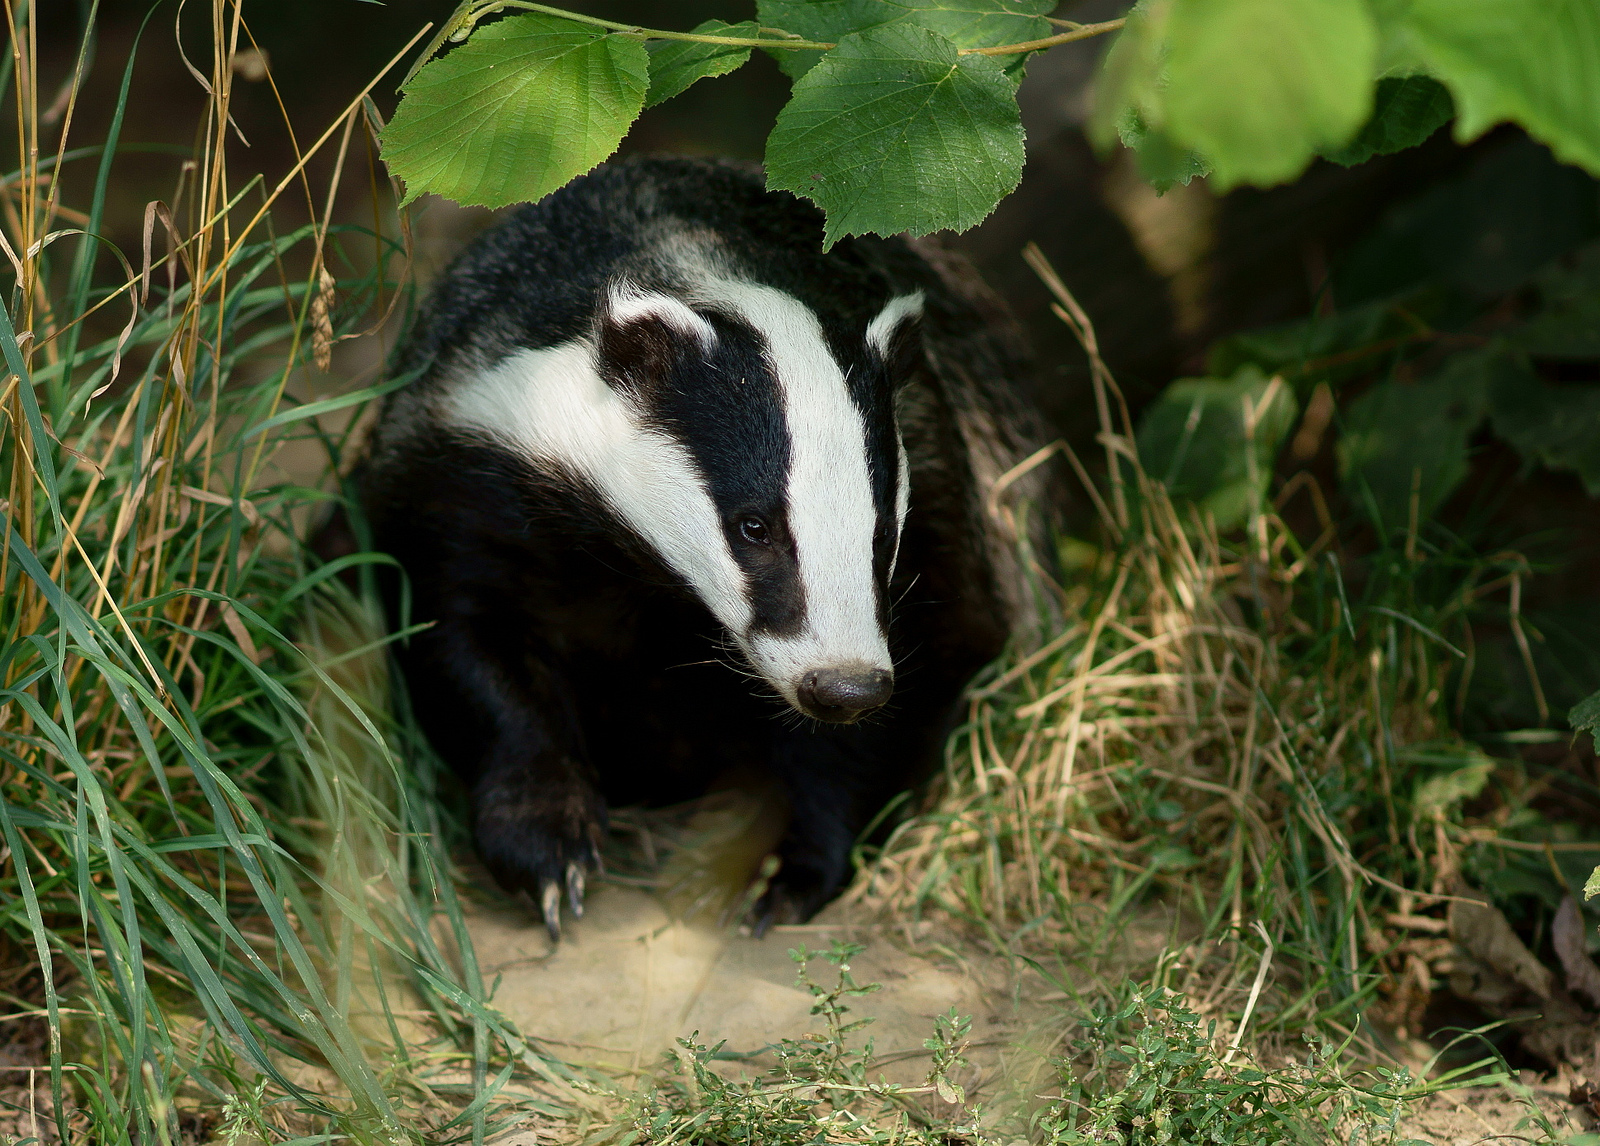 Six out of seven badgers could be 'collateral damage': image source Peter Trimmings / Flickr